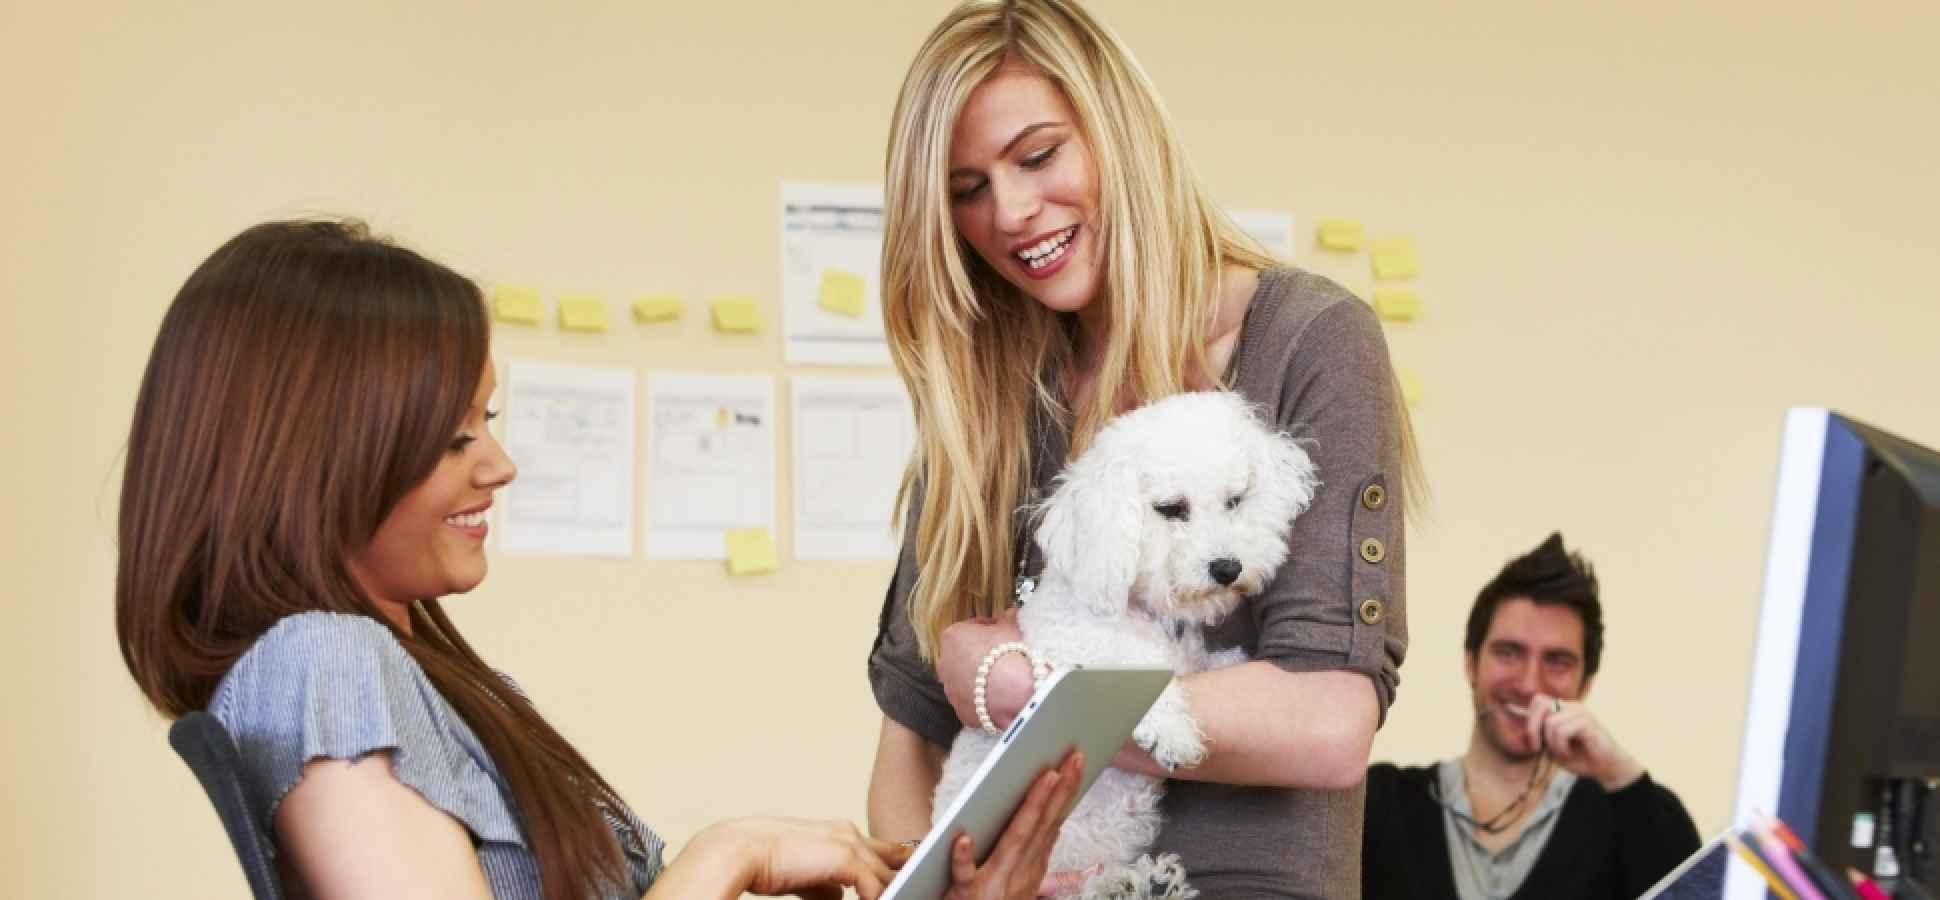 Want Happier Employees? 4 Reasons Why You Should Bring Pets to Work